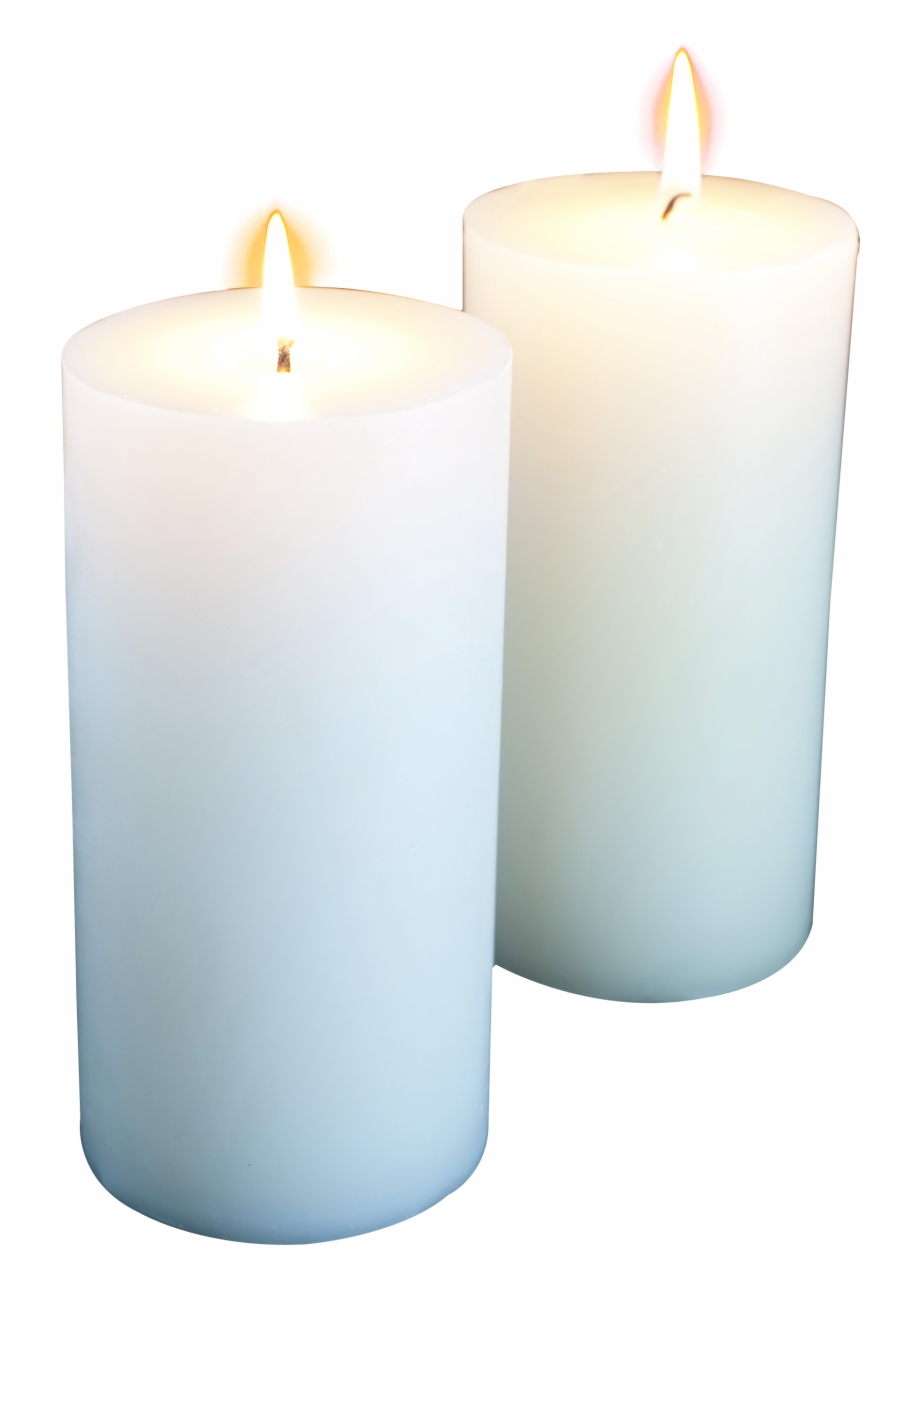 clipart royalty free library Background candles png pngtube. Transparent candle